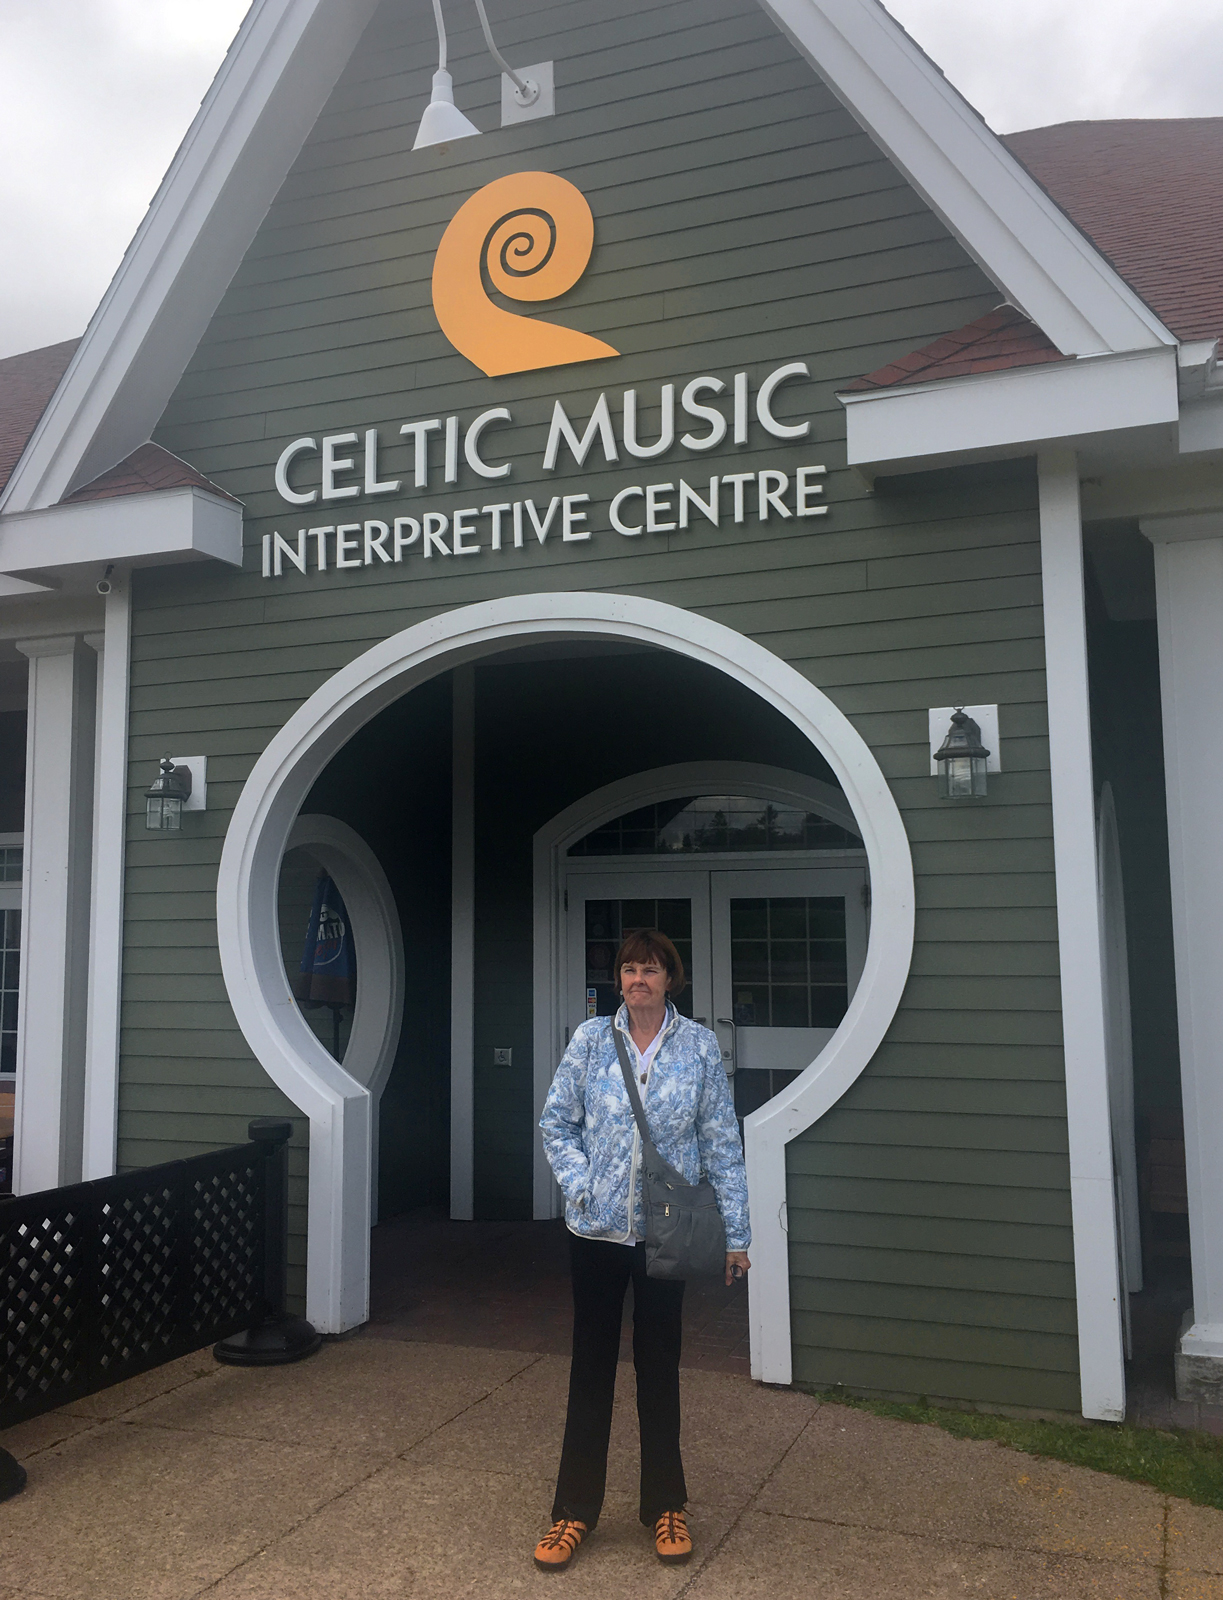 Posing at the Celtic Music Center